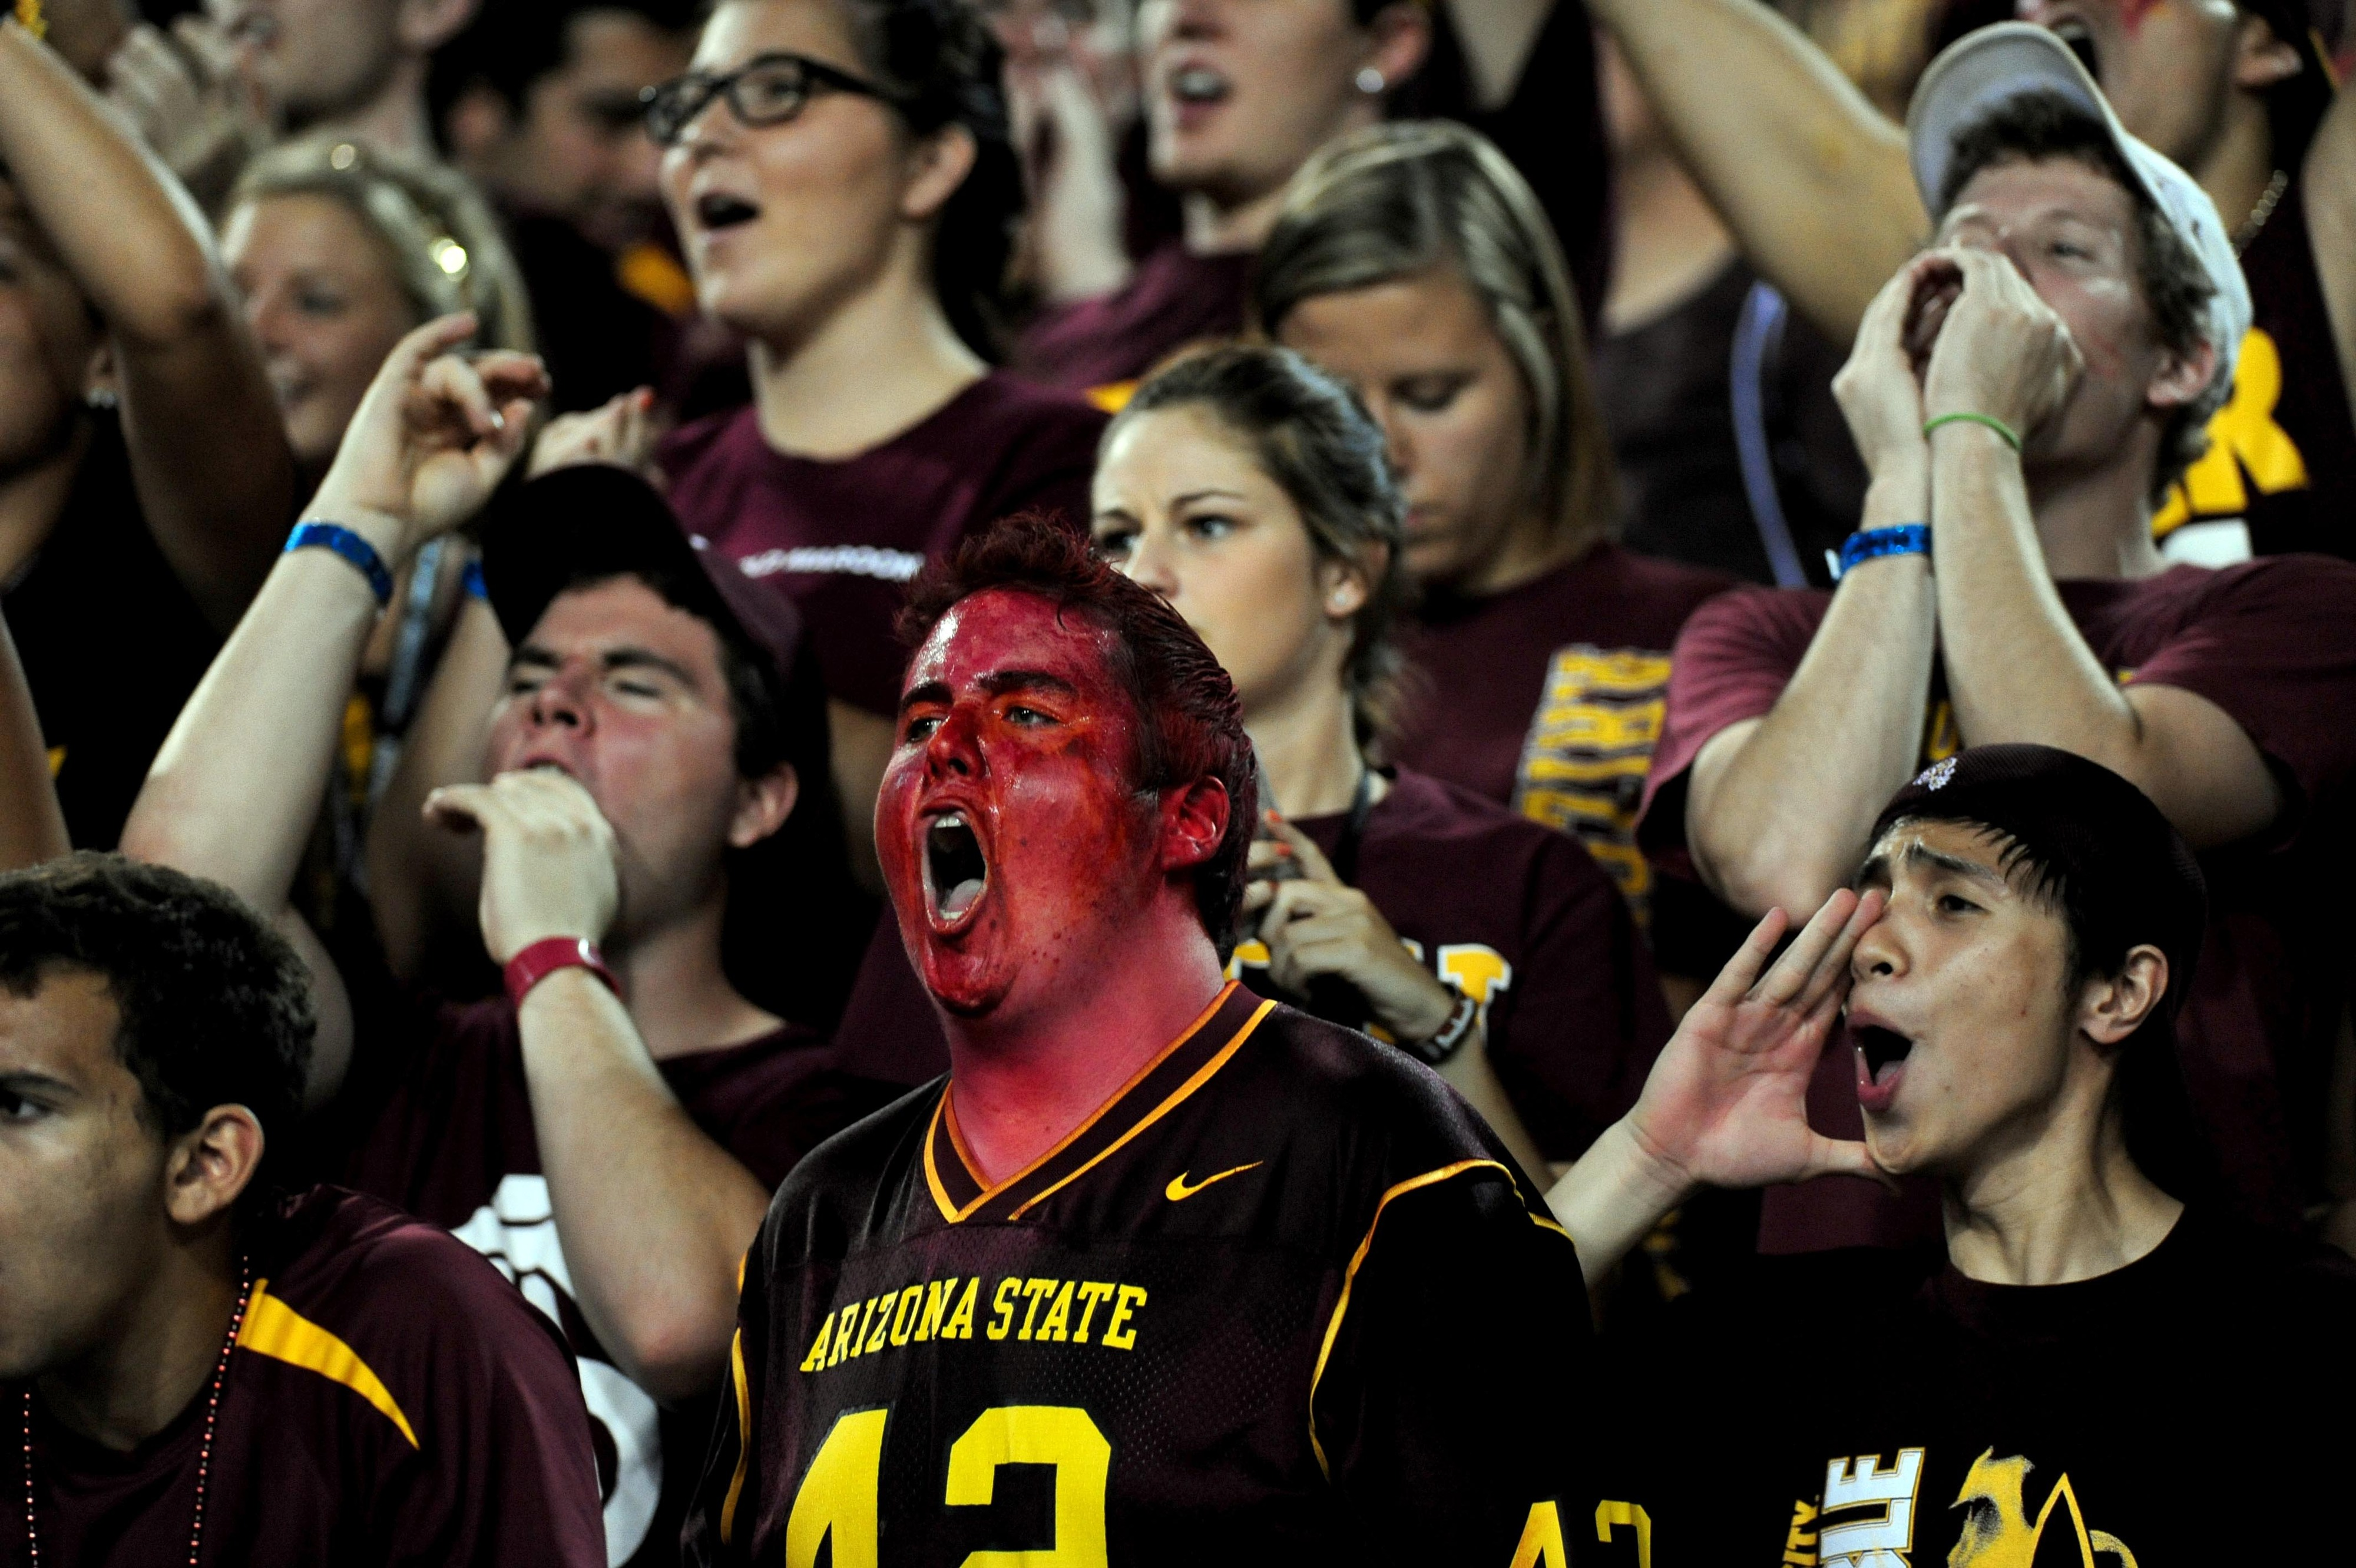 These songs should help you get ready for the game (face paint optional).